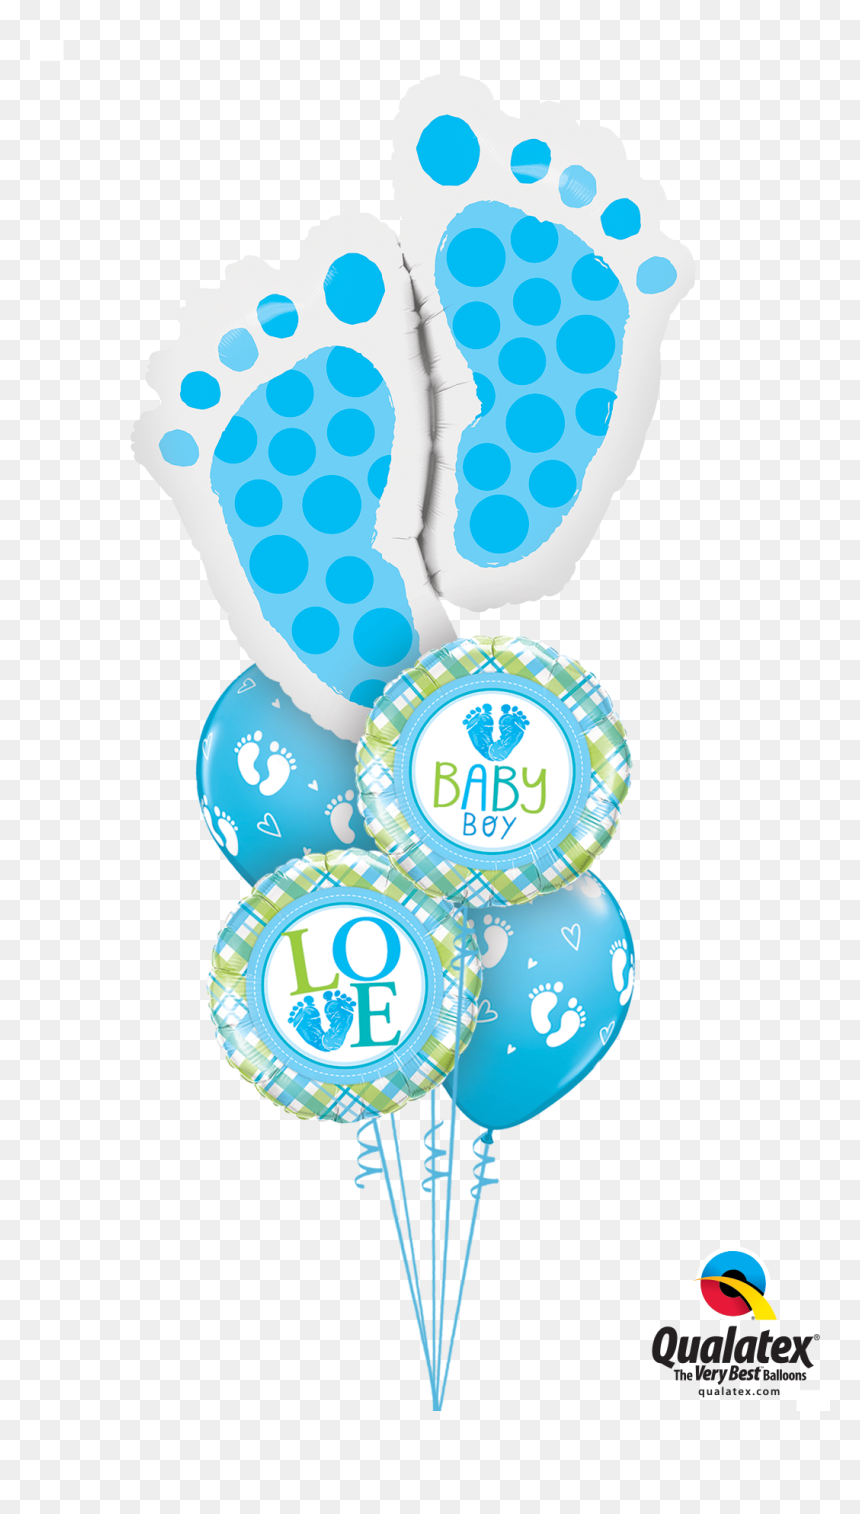 Congratulations Clipart Baby Boy - Baby Boy Png, Transparent Png - kindpng